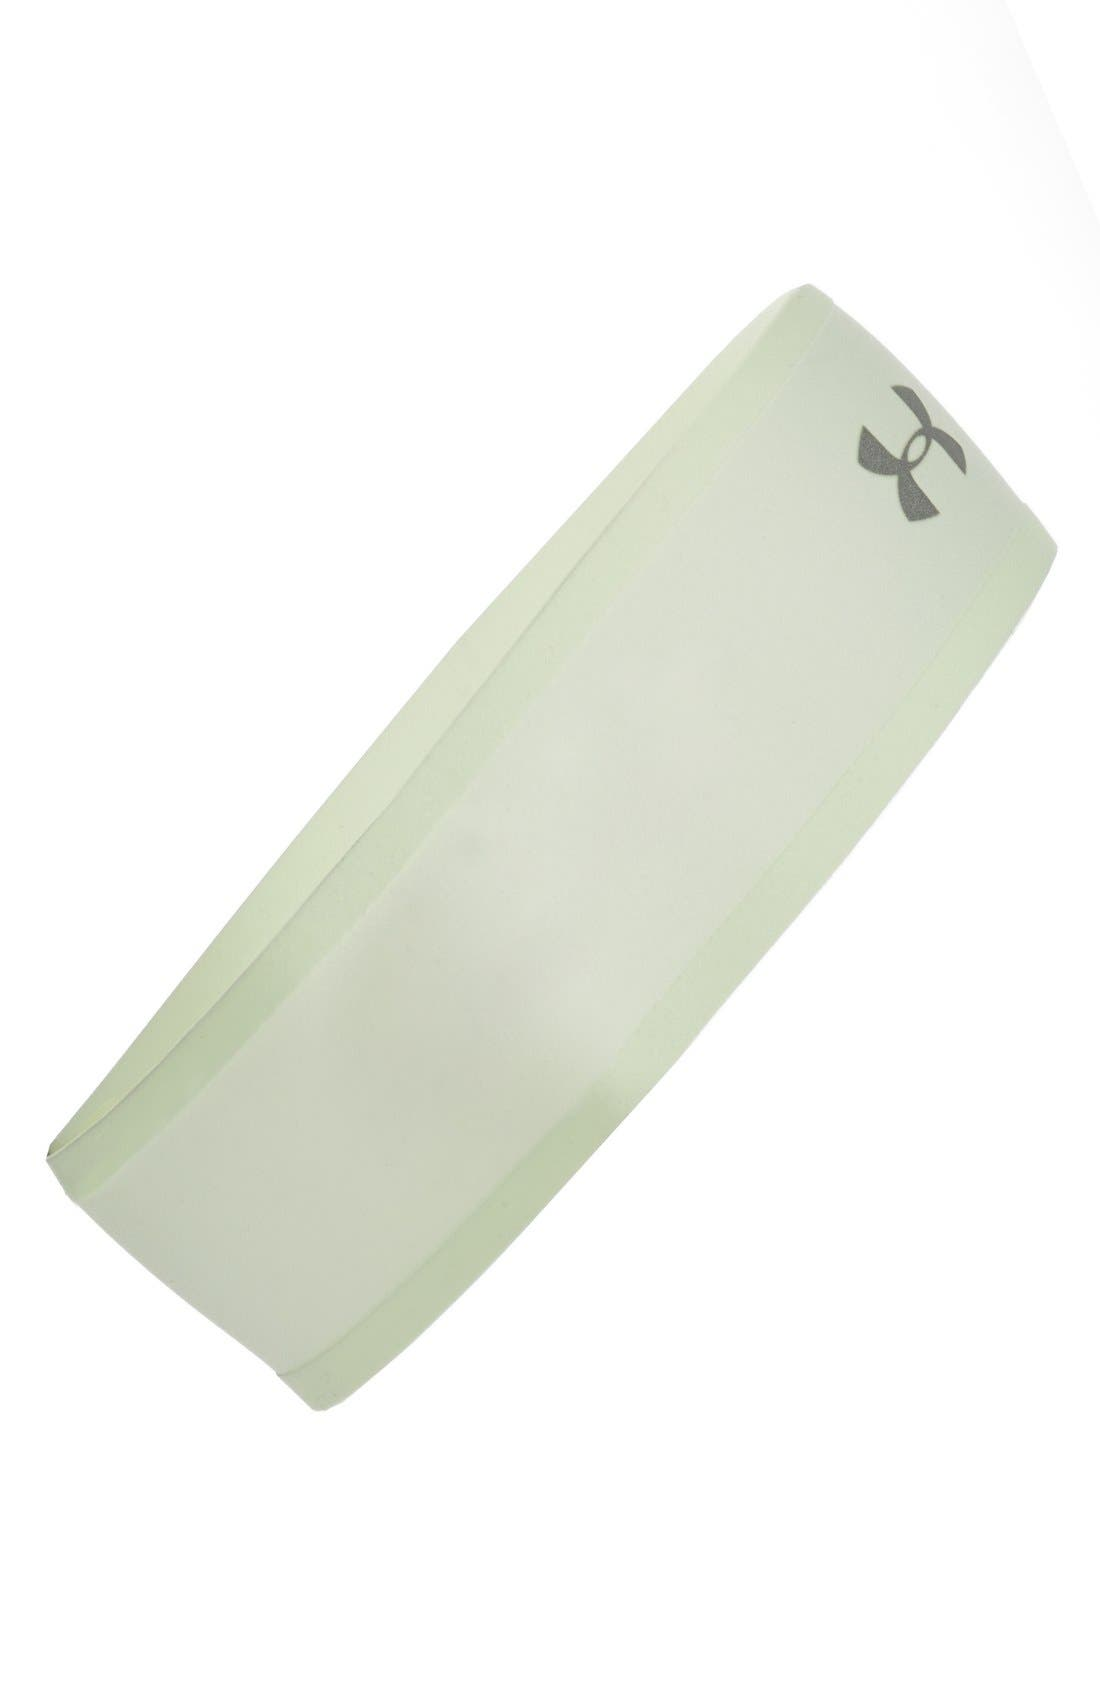 Alternate Image 1 Selected - Under Armour 'Fly Fast' Headband